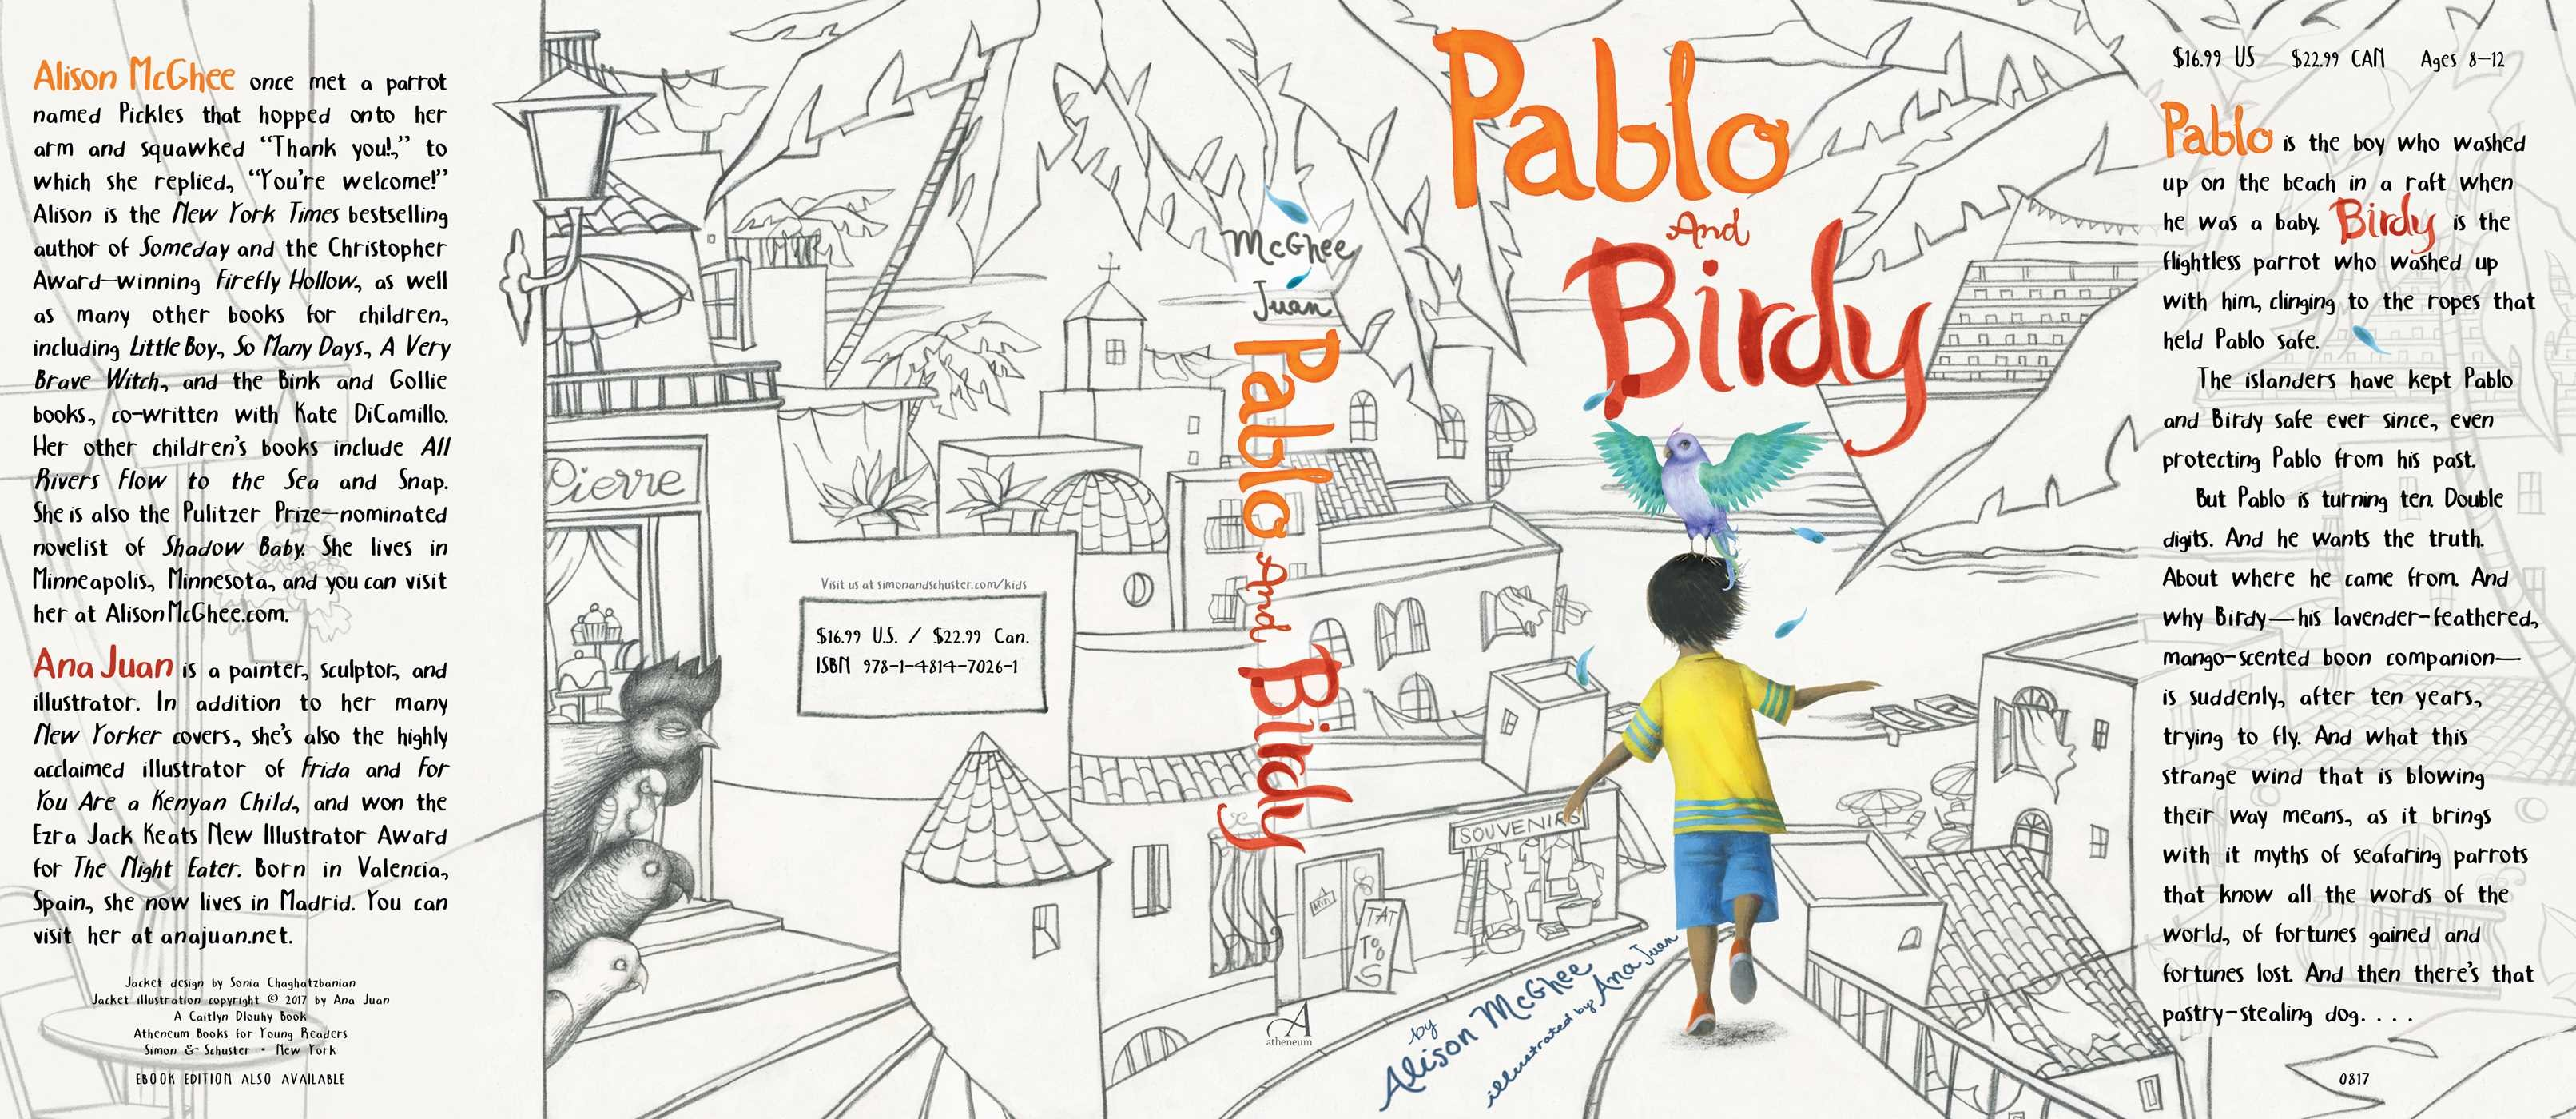 Pablo and birdy 9781481470261.in01